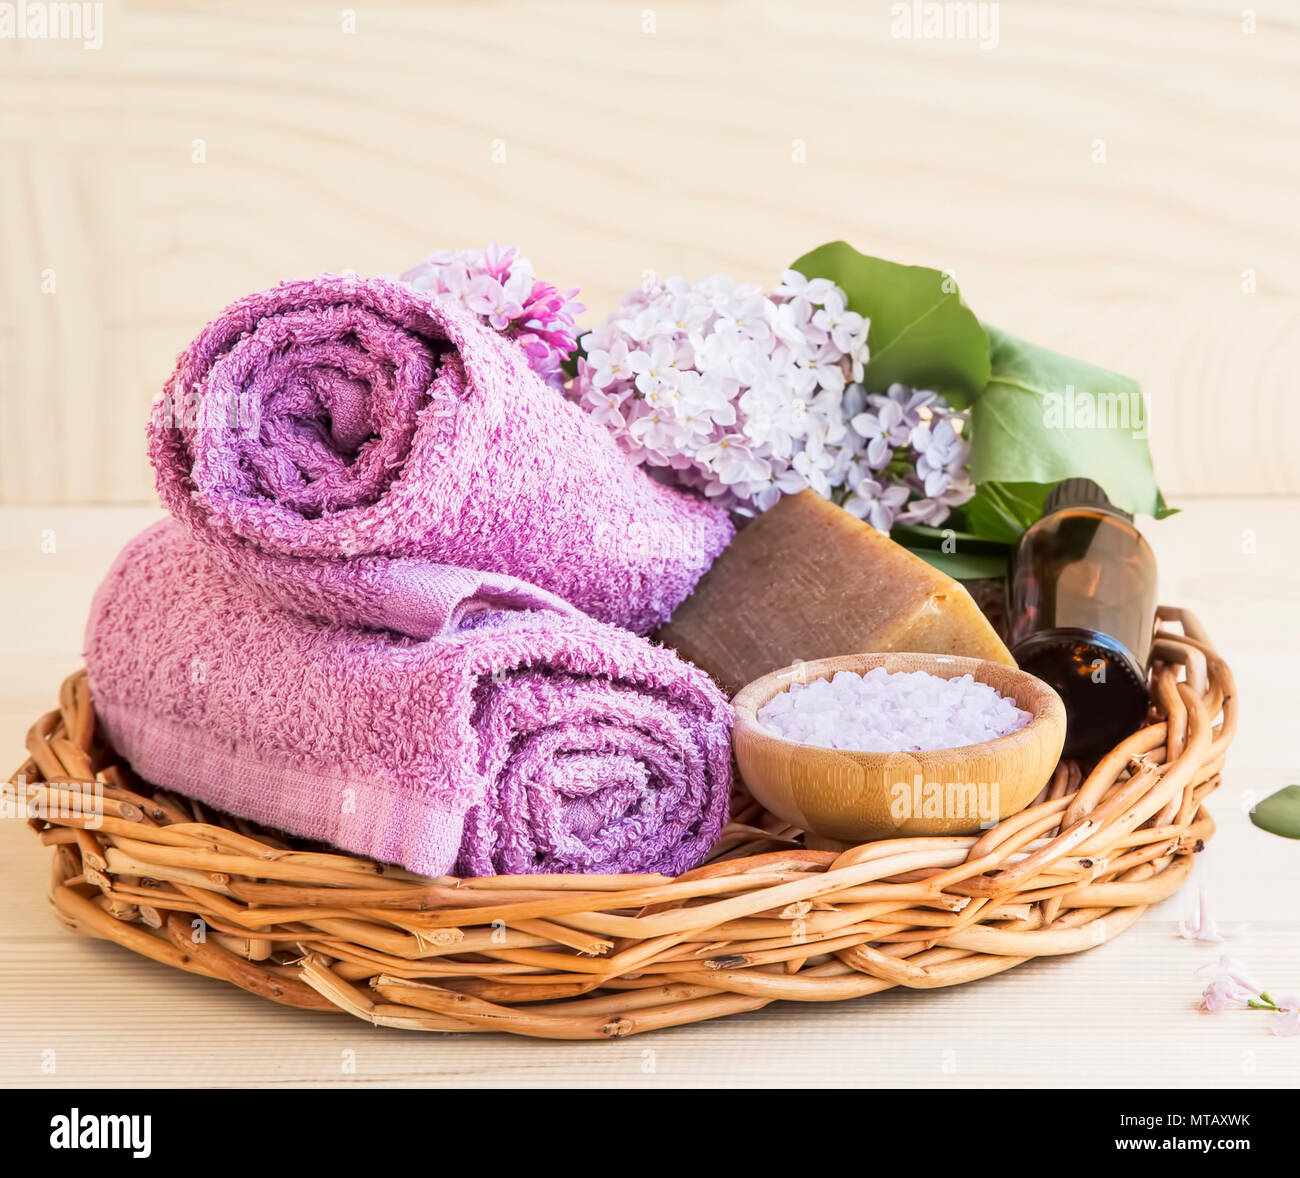 Salone Tray Surreal And Unconventional: Organic Skincare And Spa Products With Lilac Flowers In A